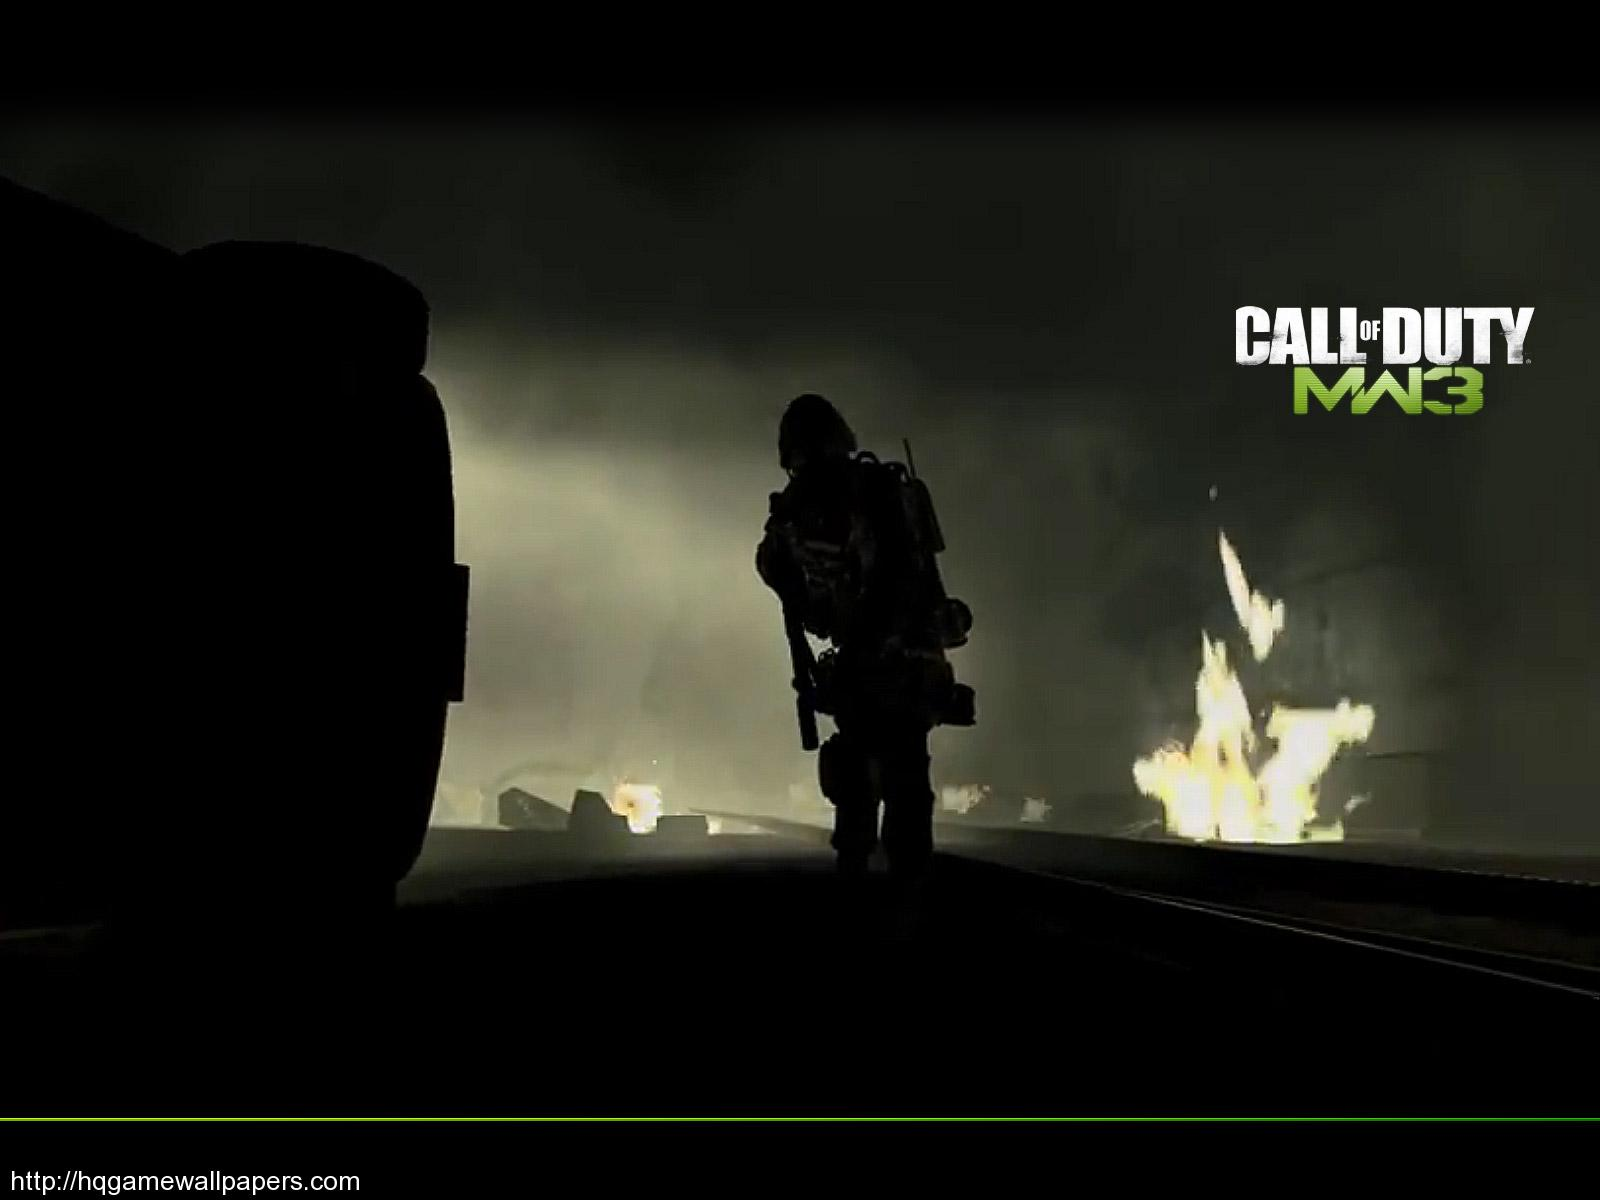 Download High Quality Game Wallpaper Named COD MW3 1600x1200